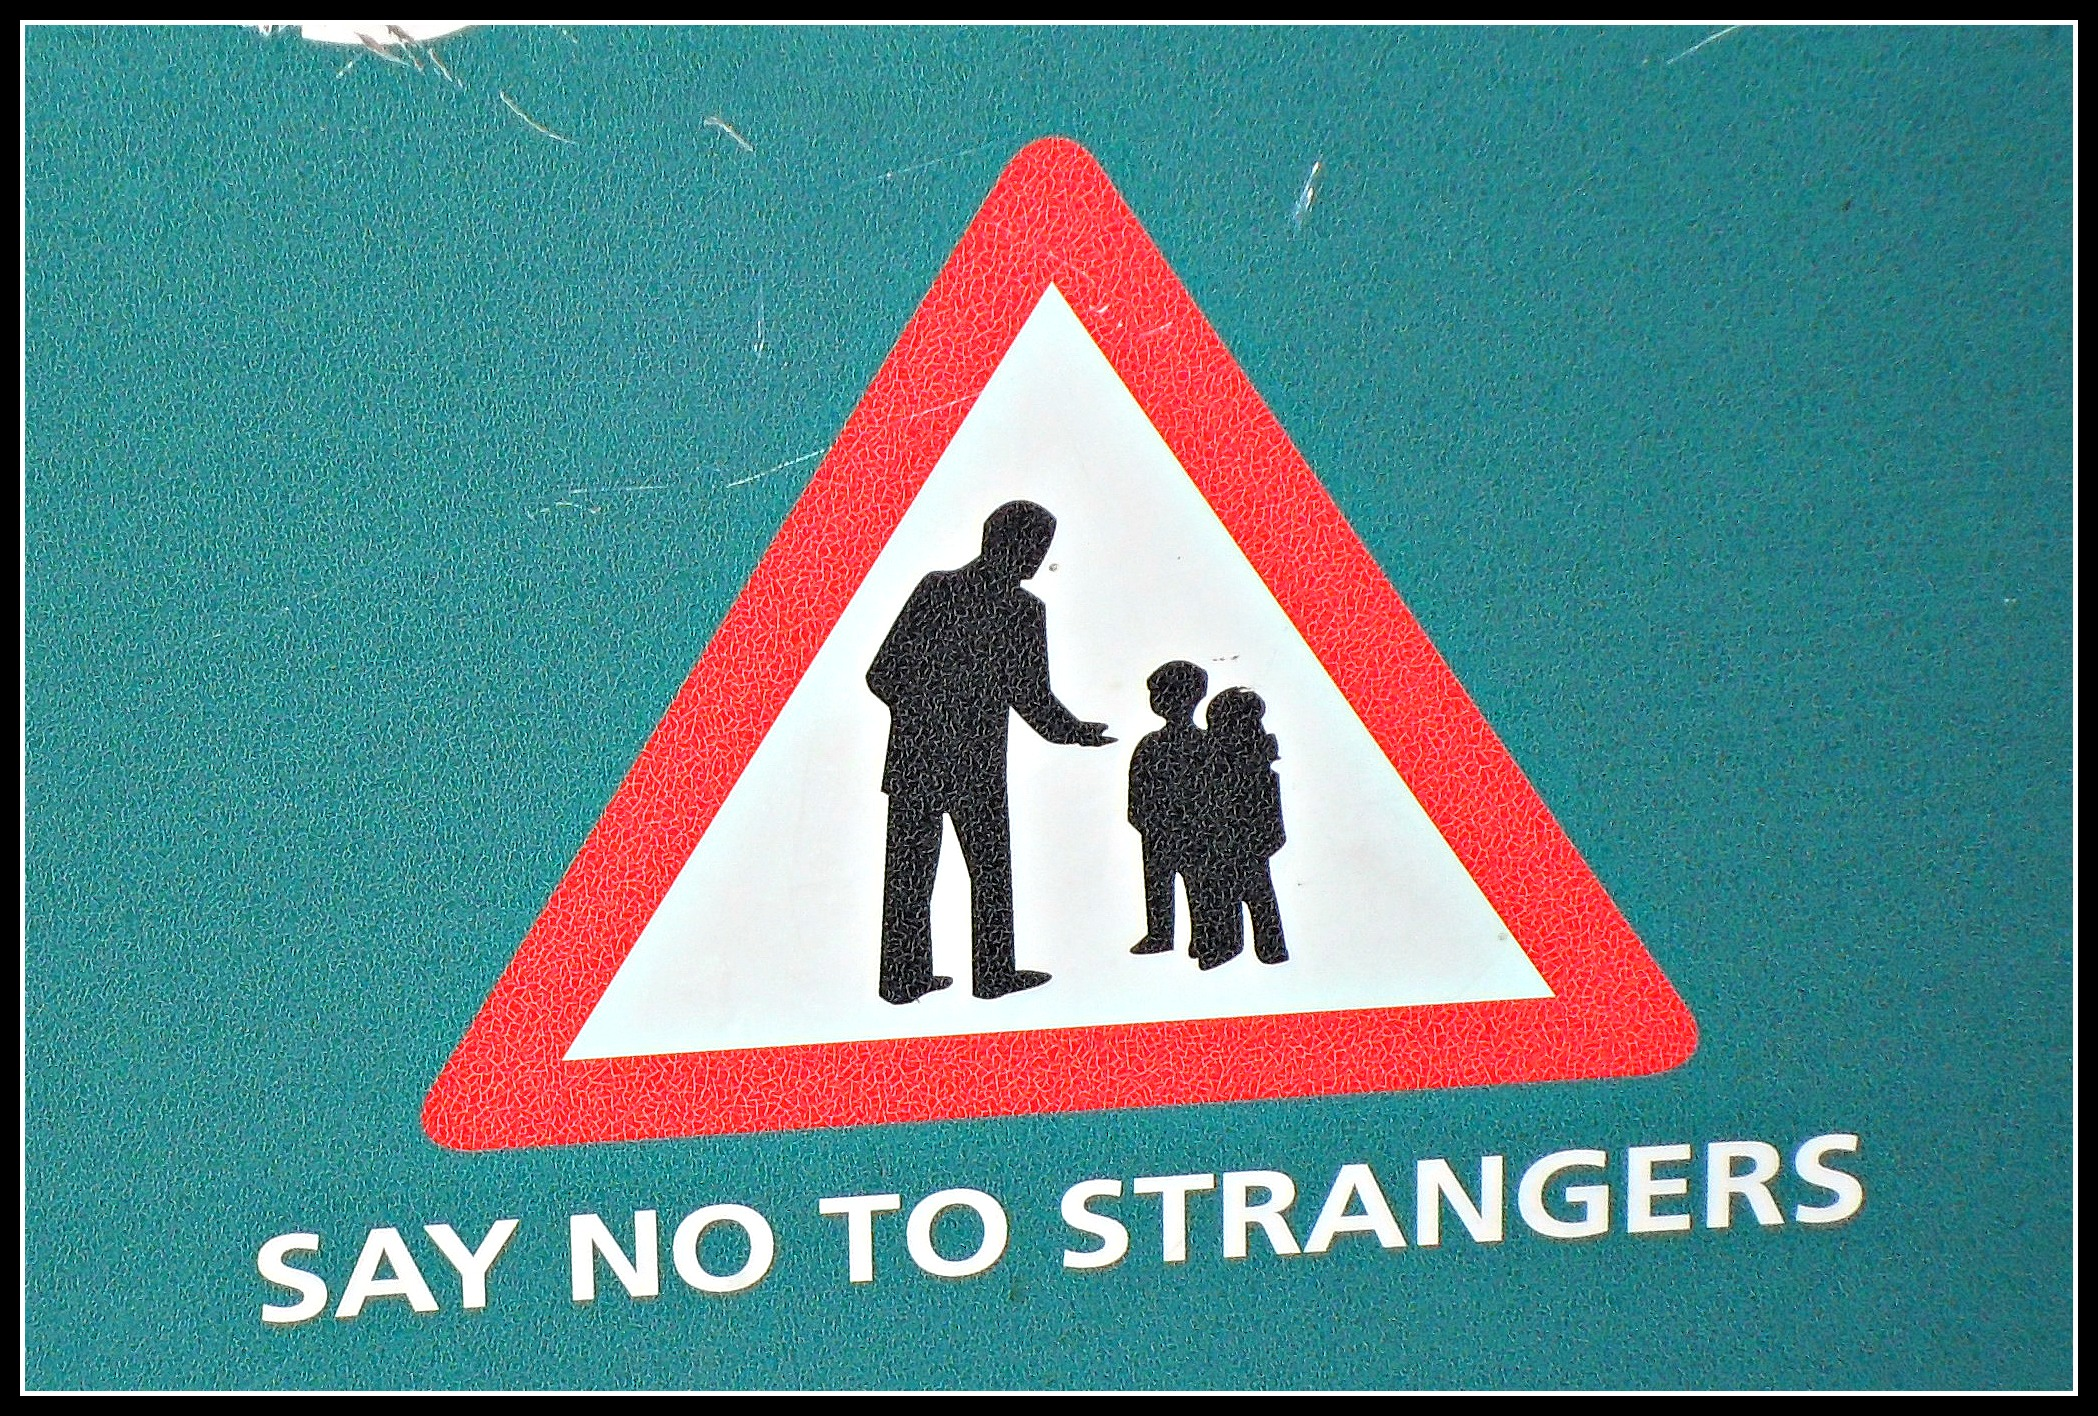 Do you send out conflicting messages about stranger danger?